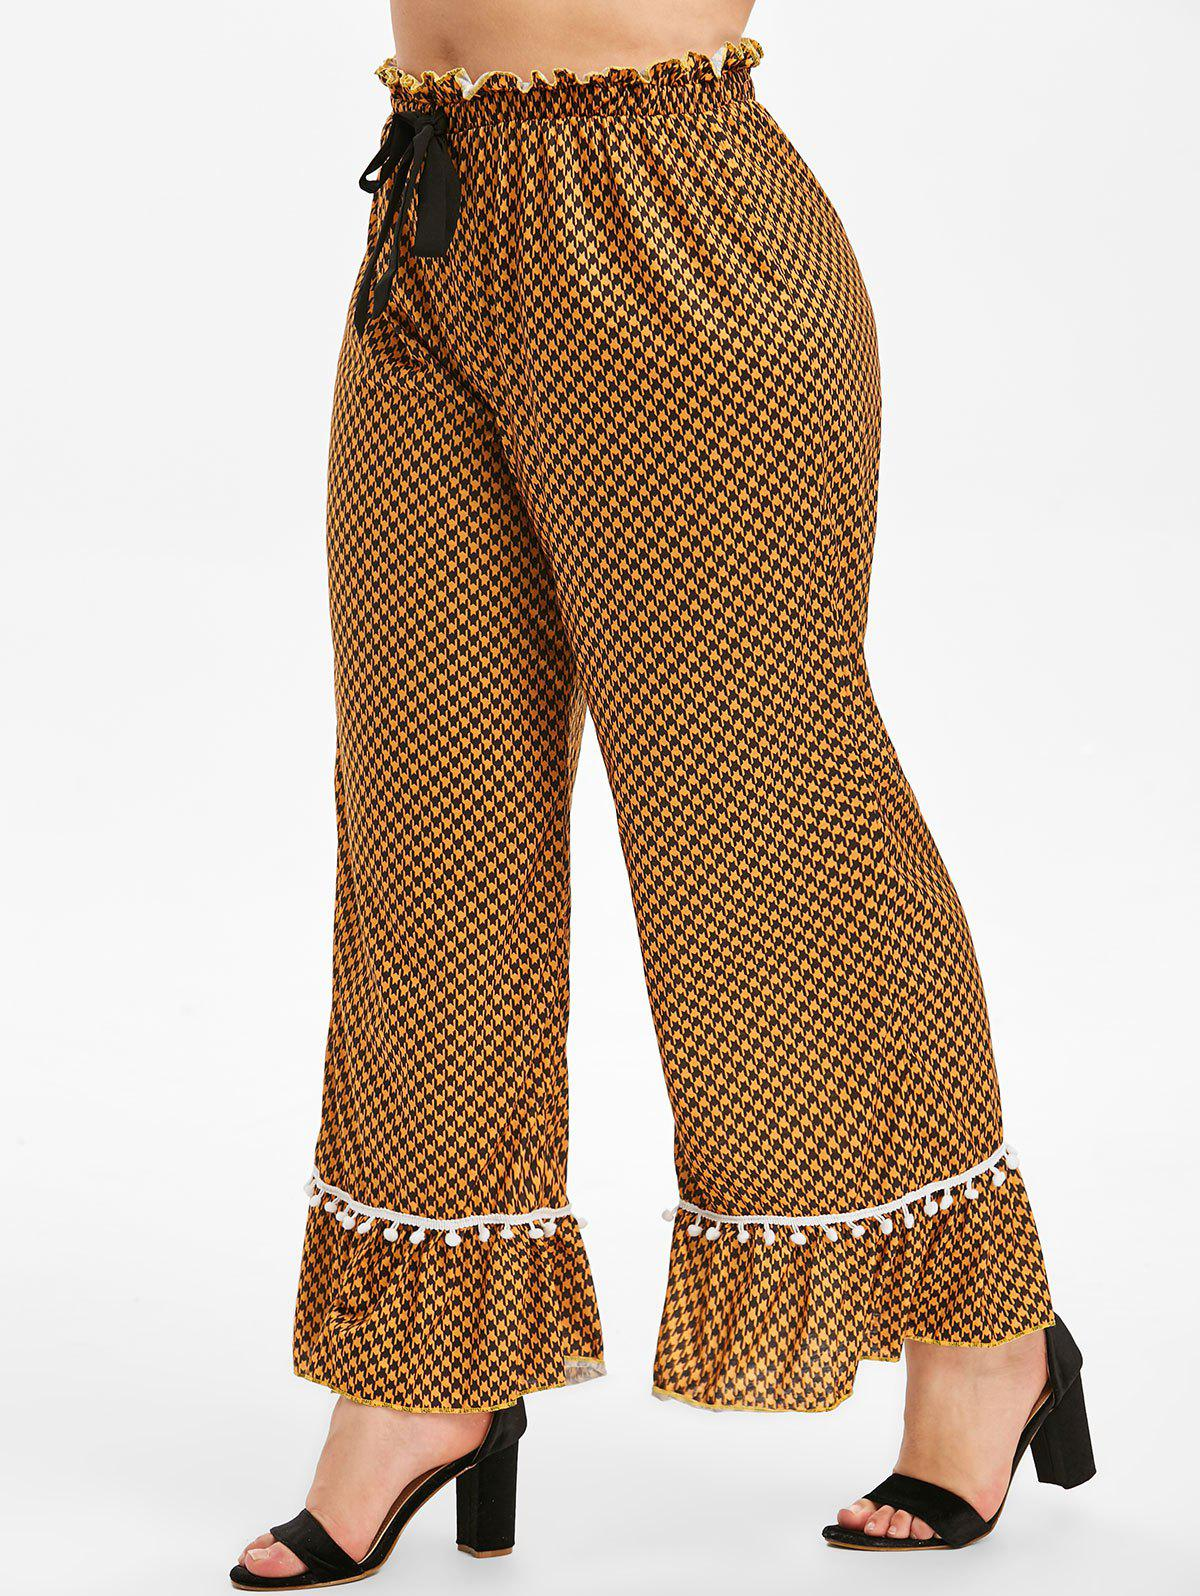 Buy Plus Size Houndstooth Flounce Palazzo Pants